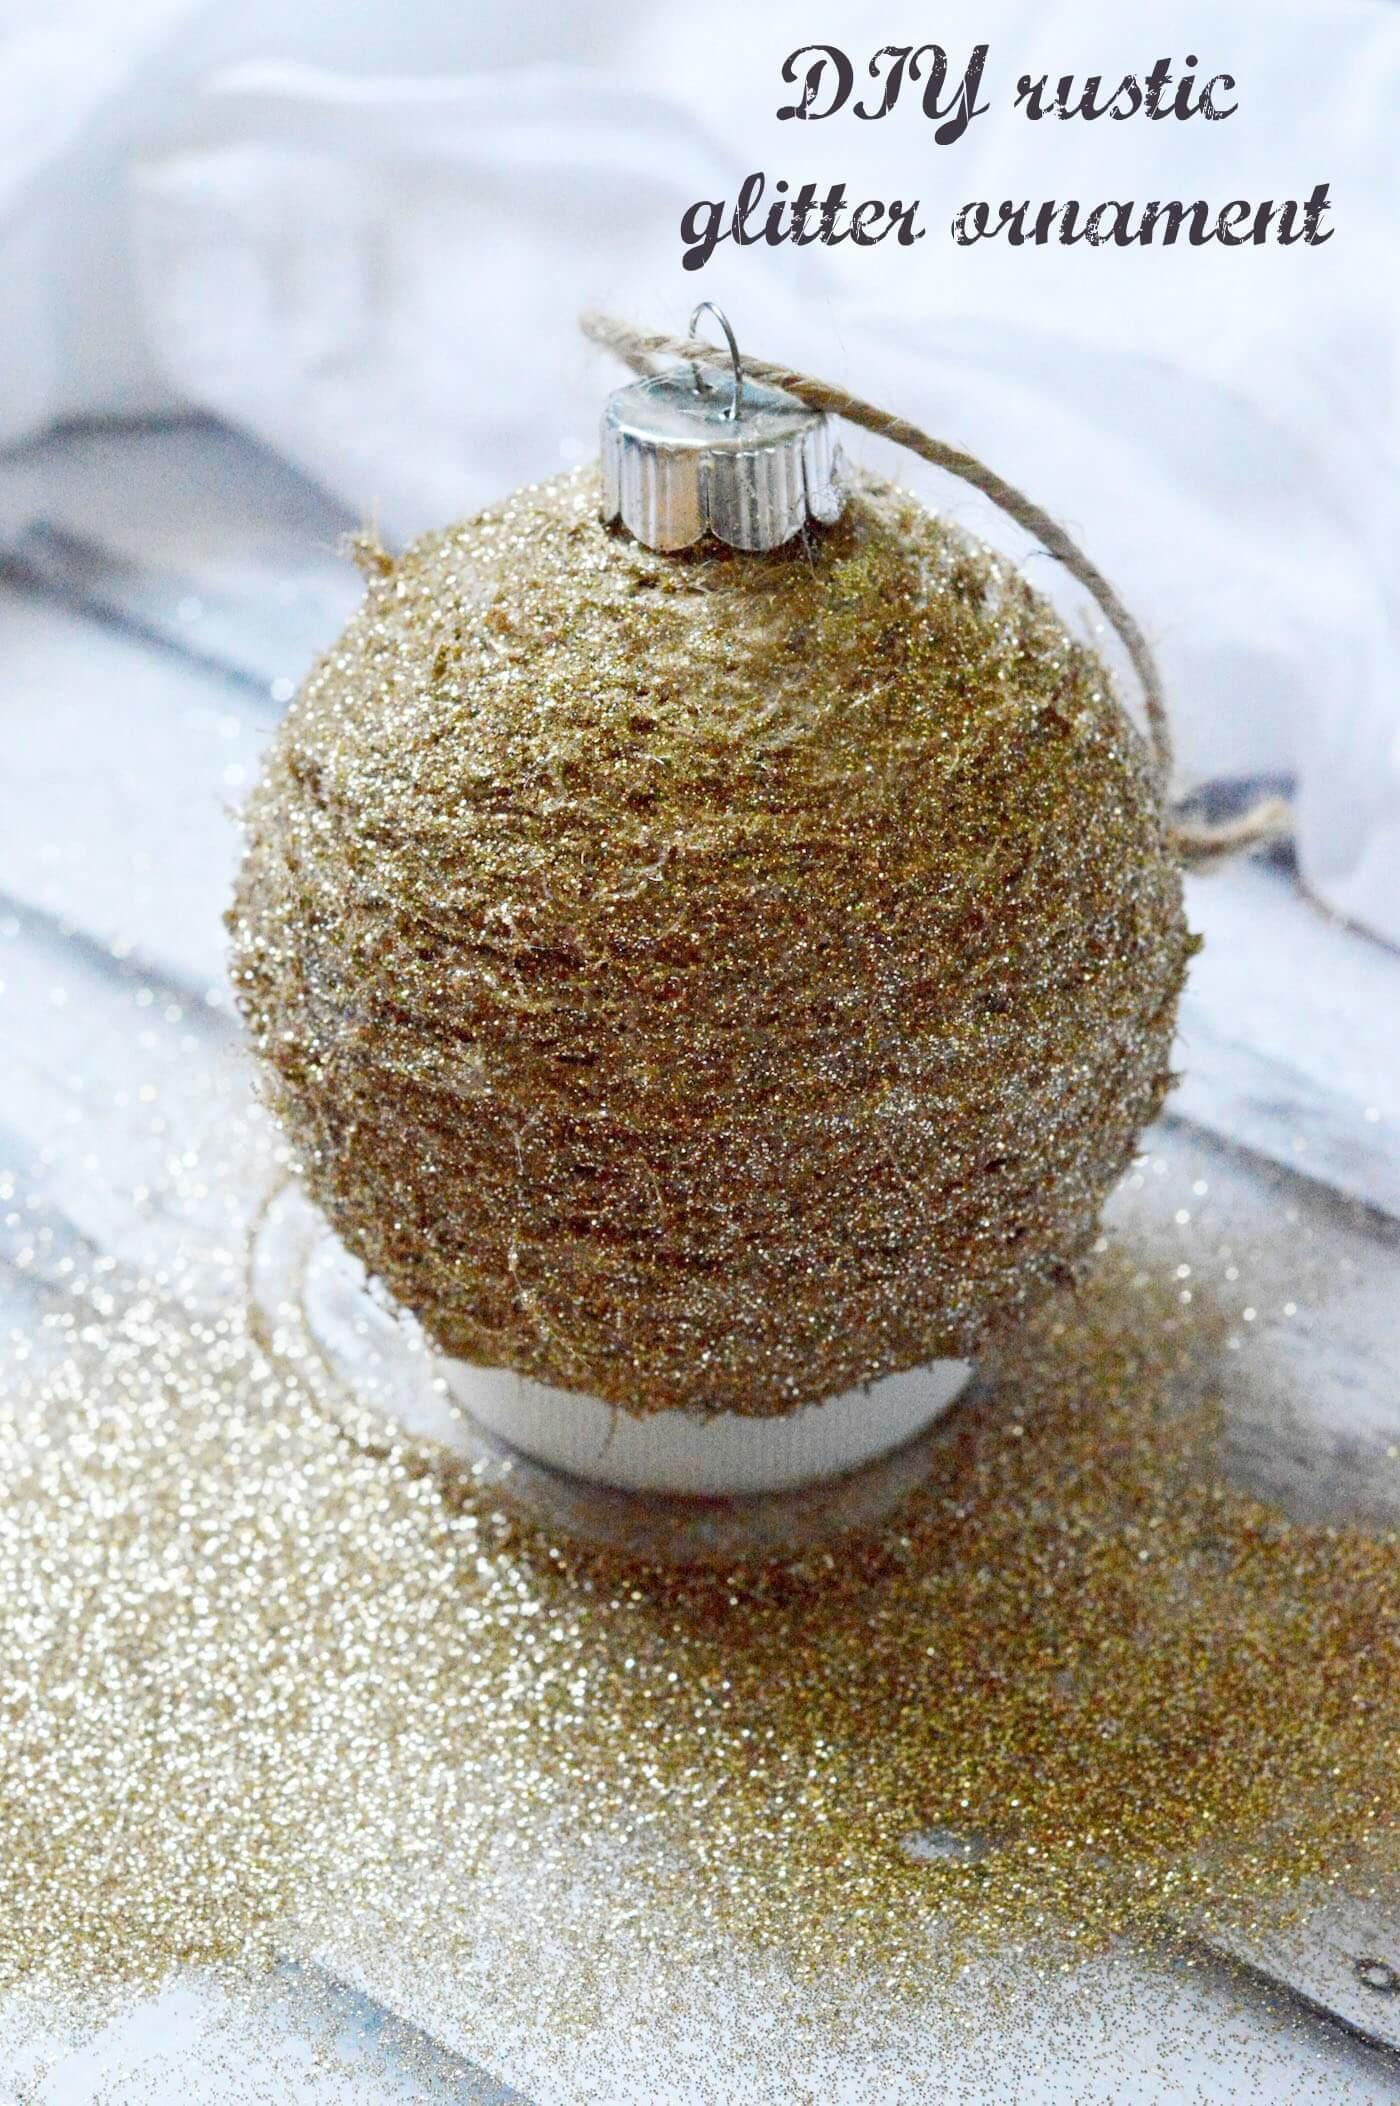 Diy Rustic Glitter Ornament Mod Podge Rocks